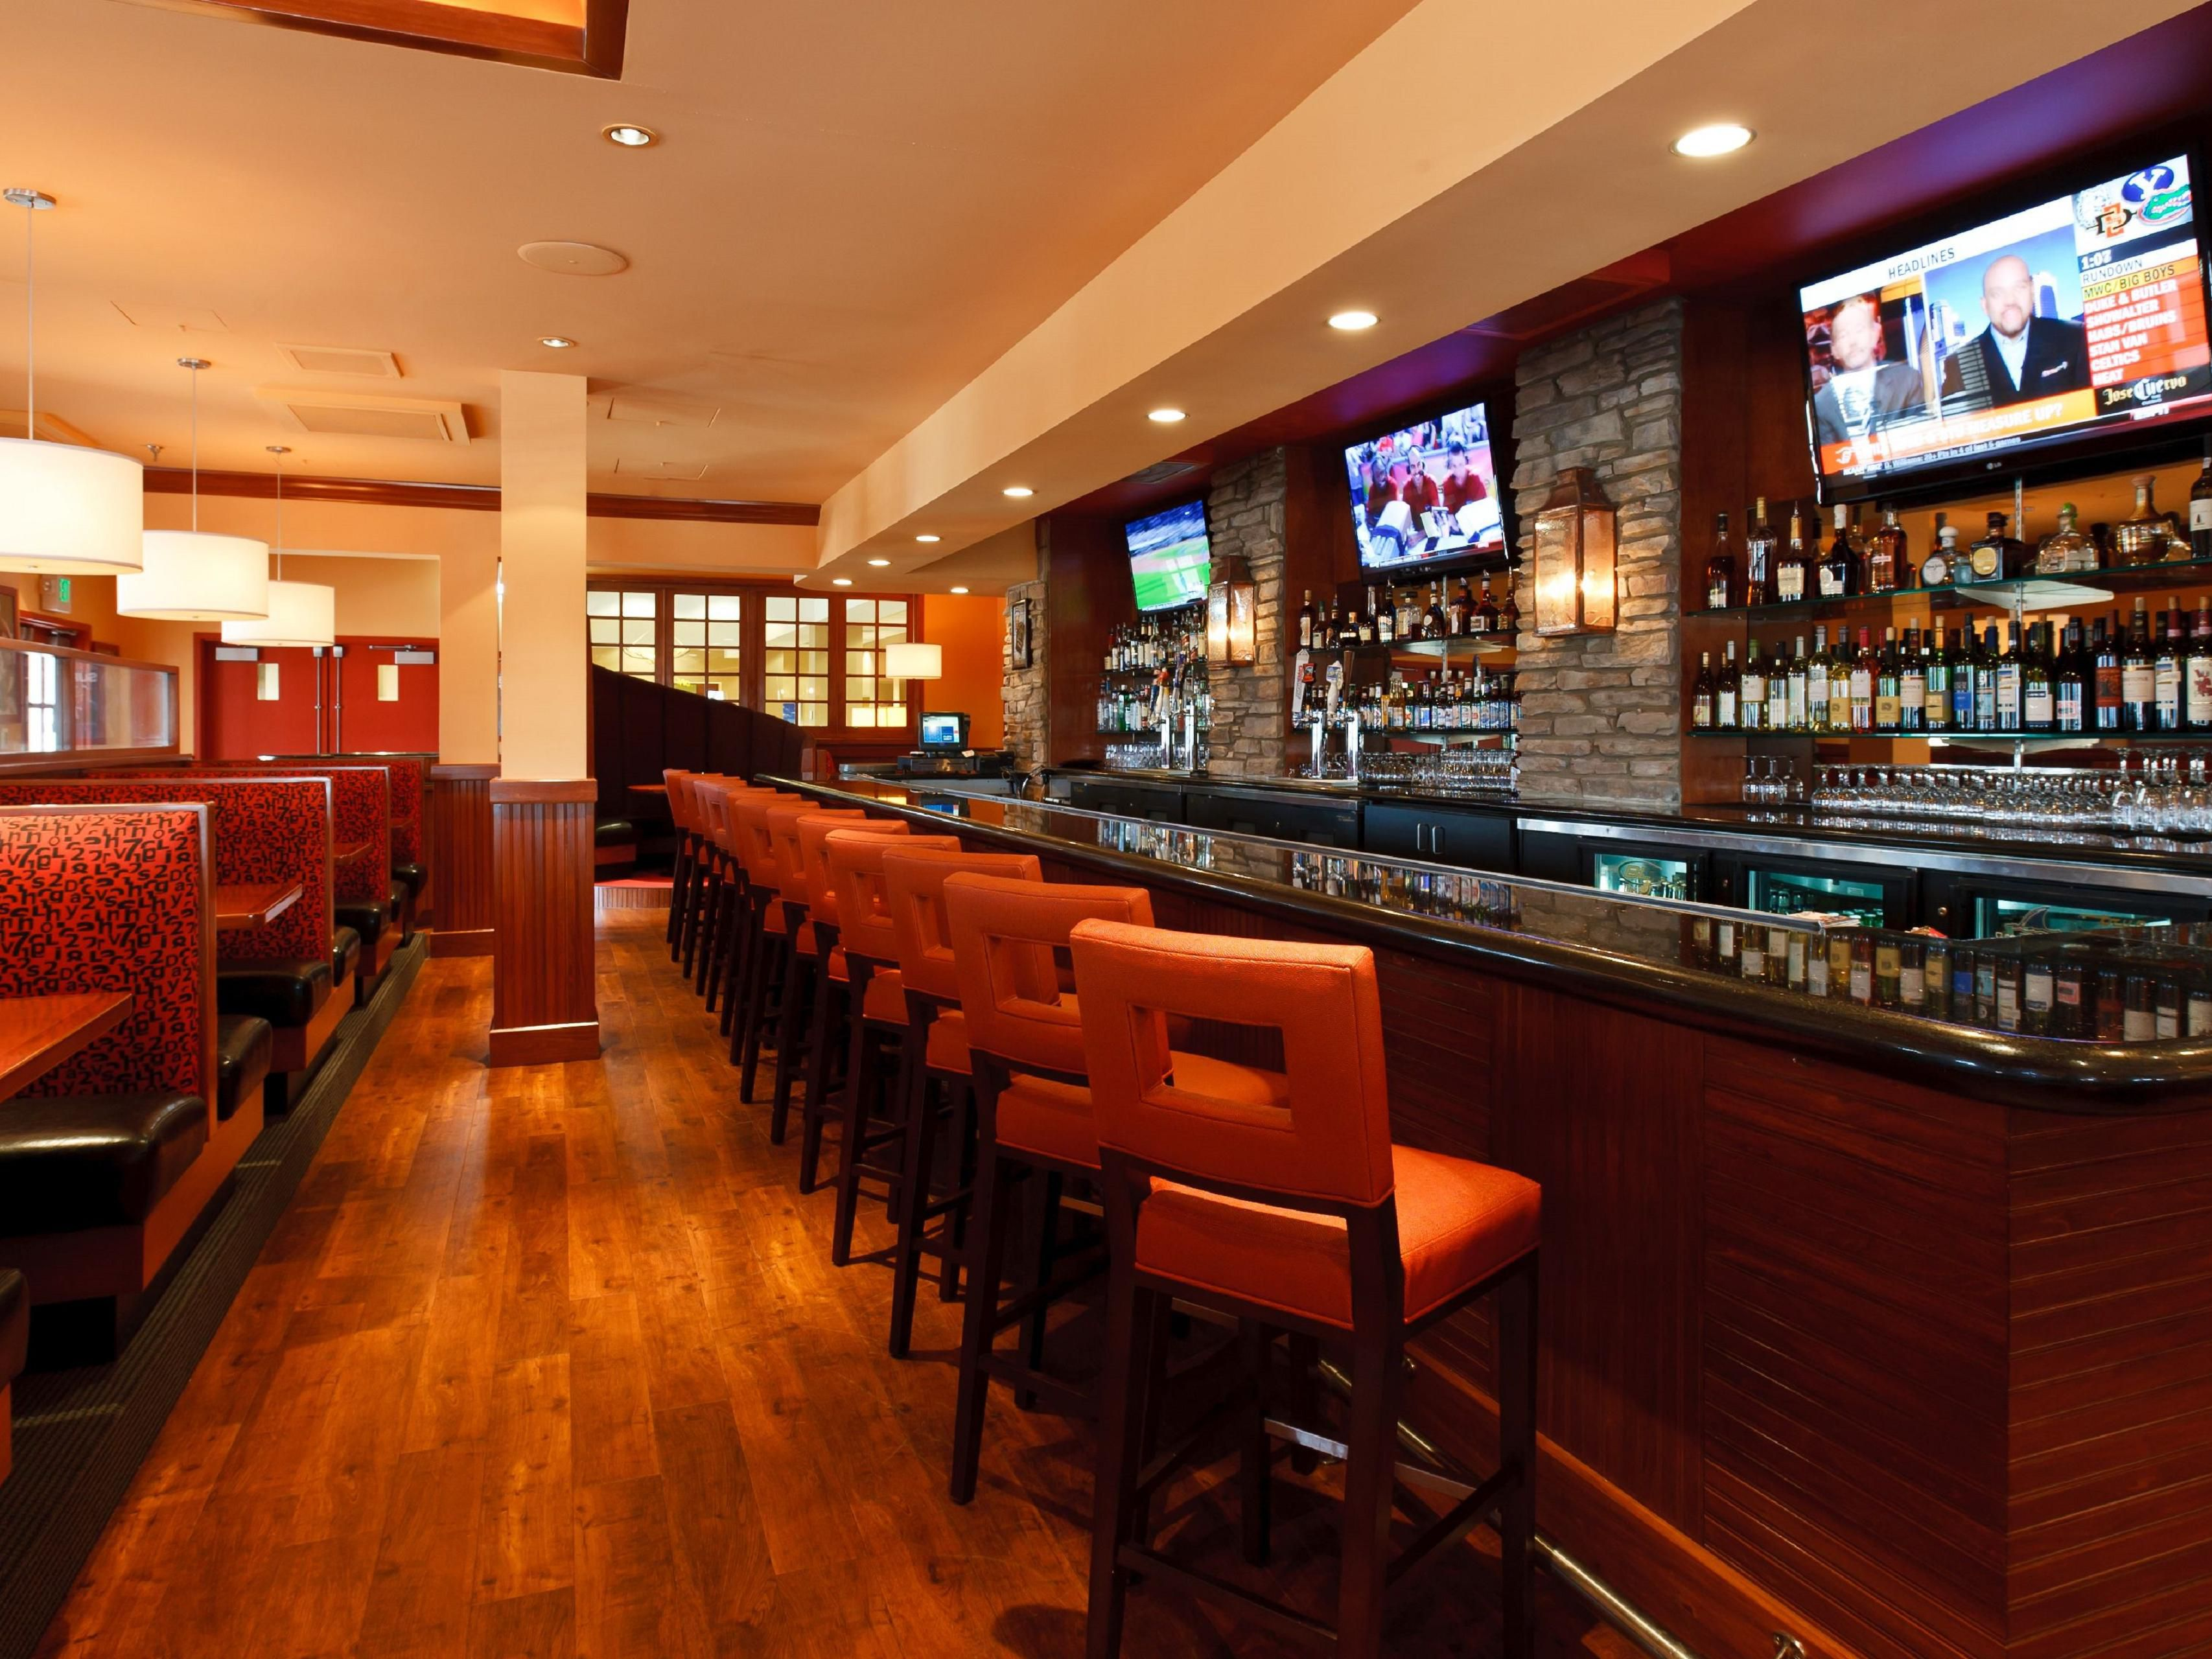 Colorado Springs Hotel Restaurant - Sporting News Grill